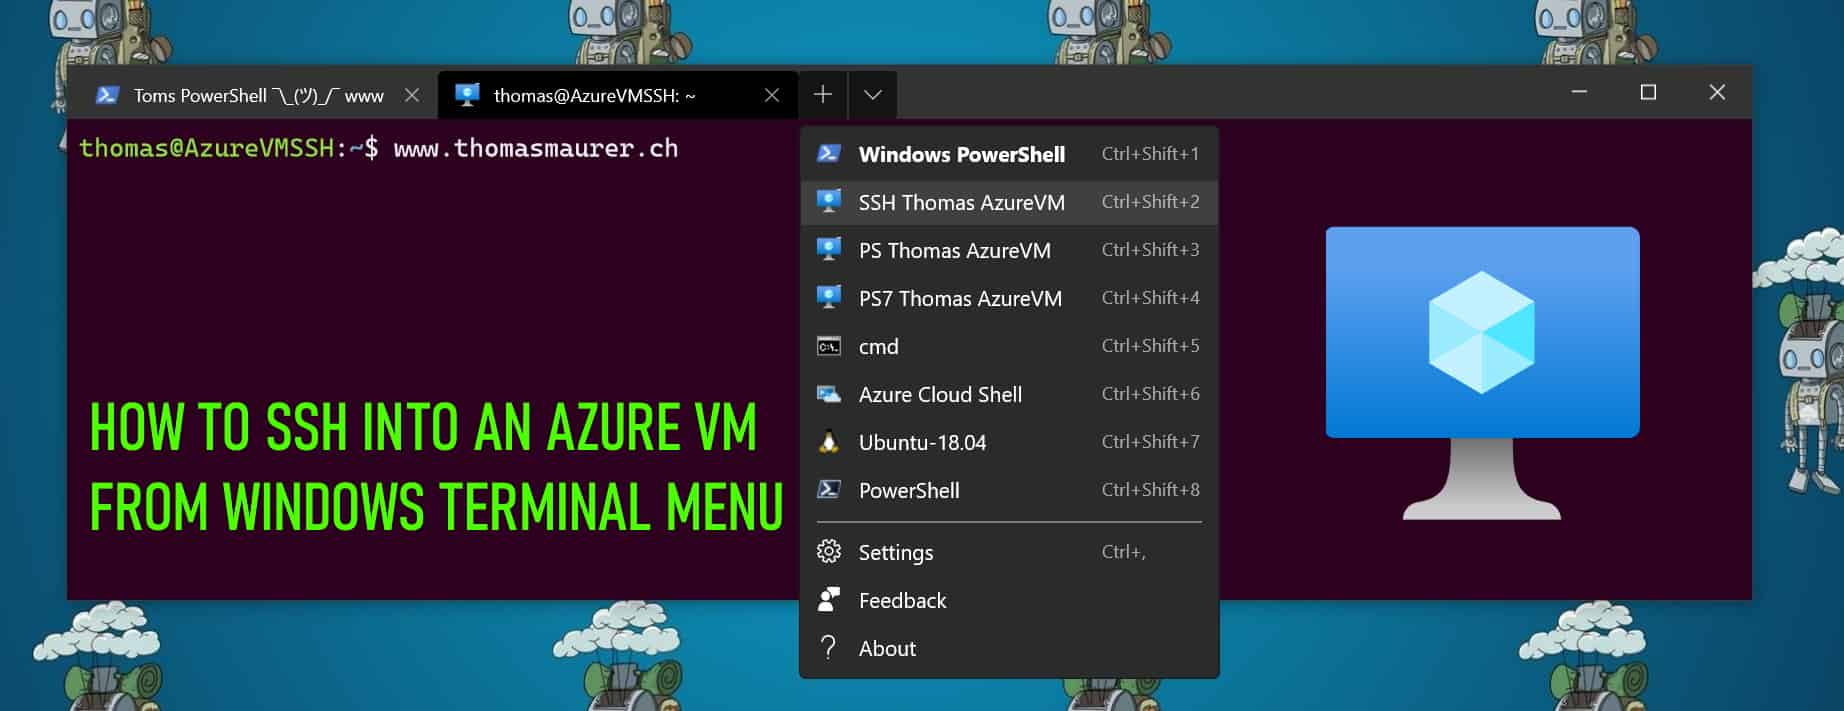 How to SSH into an Azure VM from Windows Terminal Menu